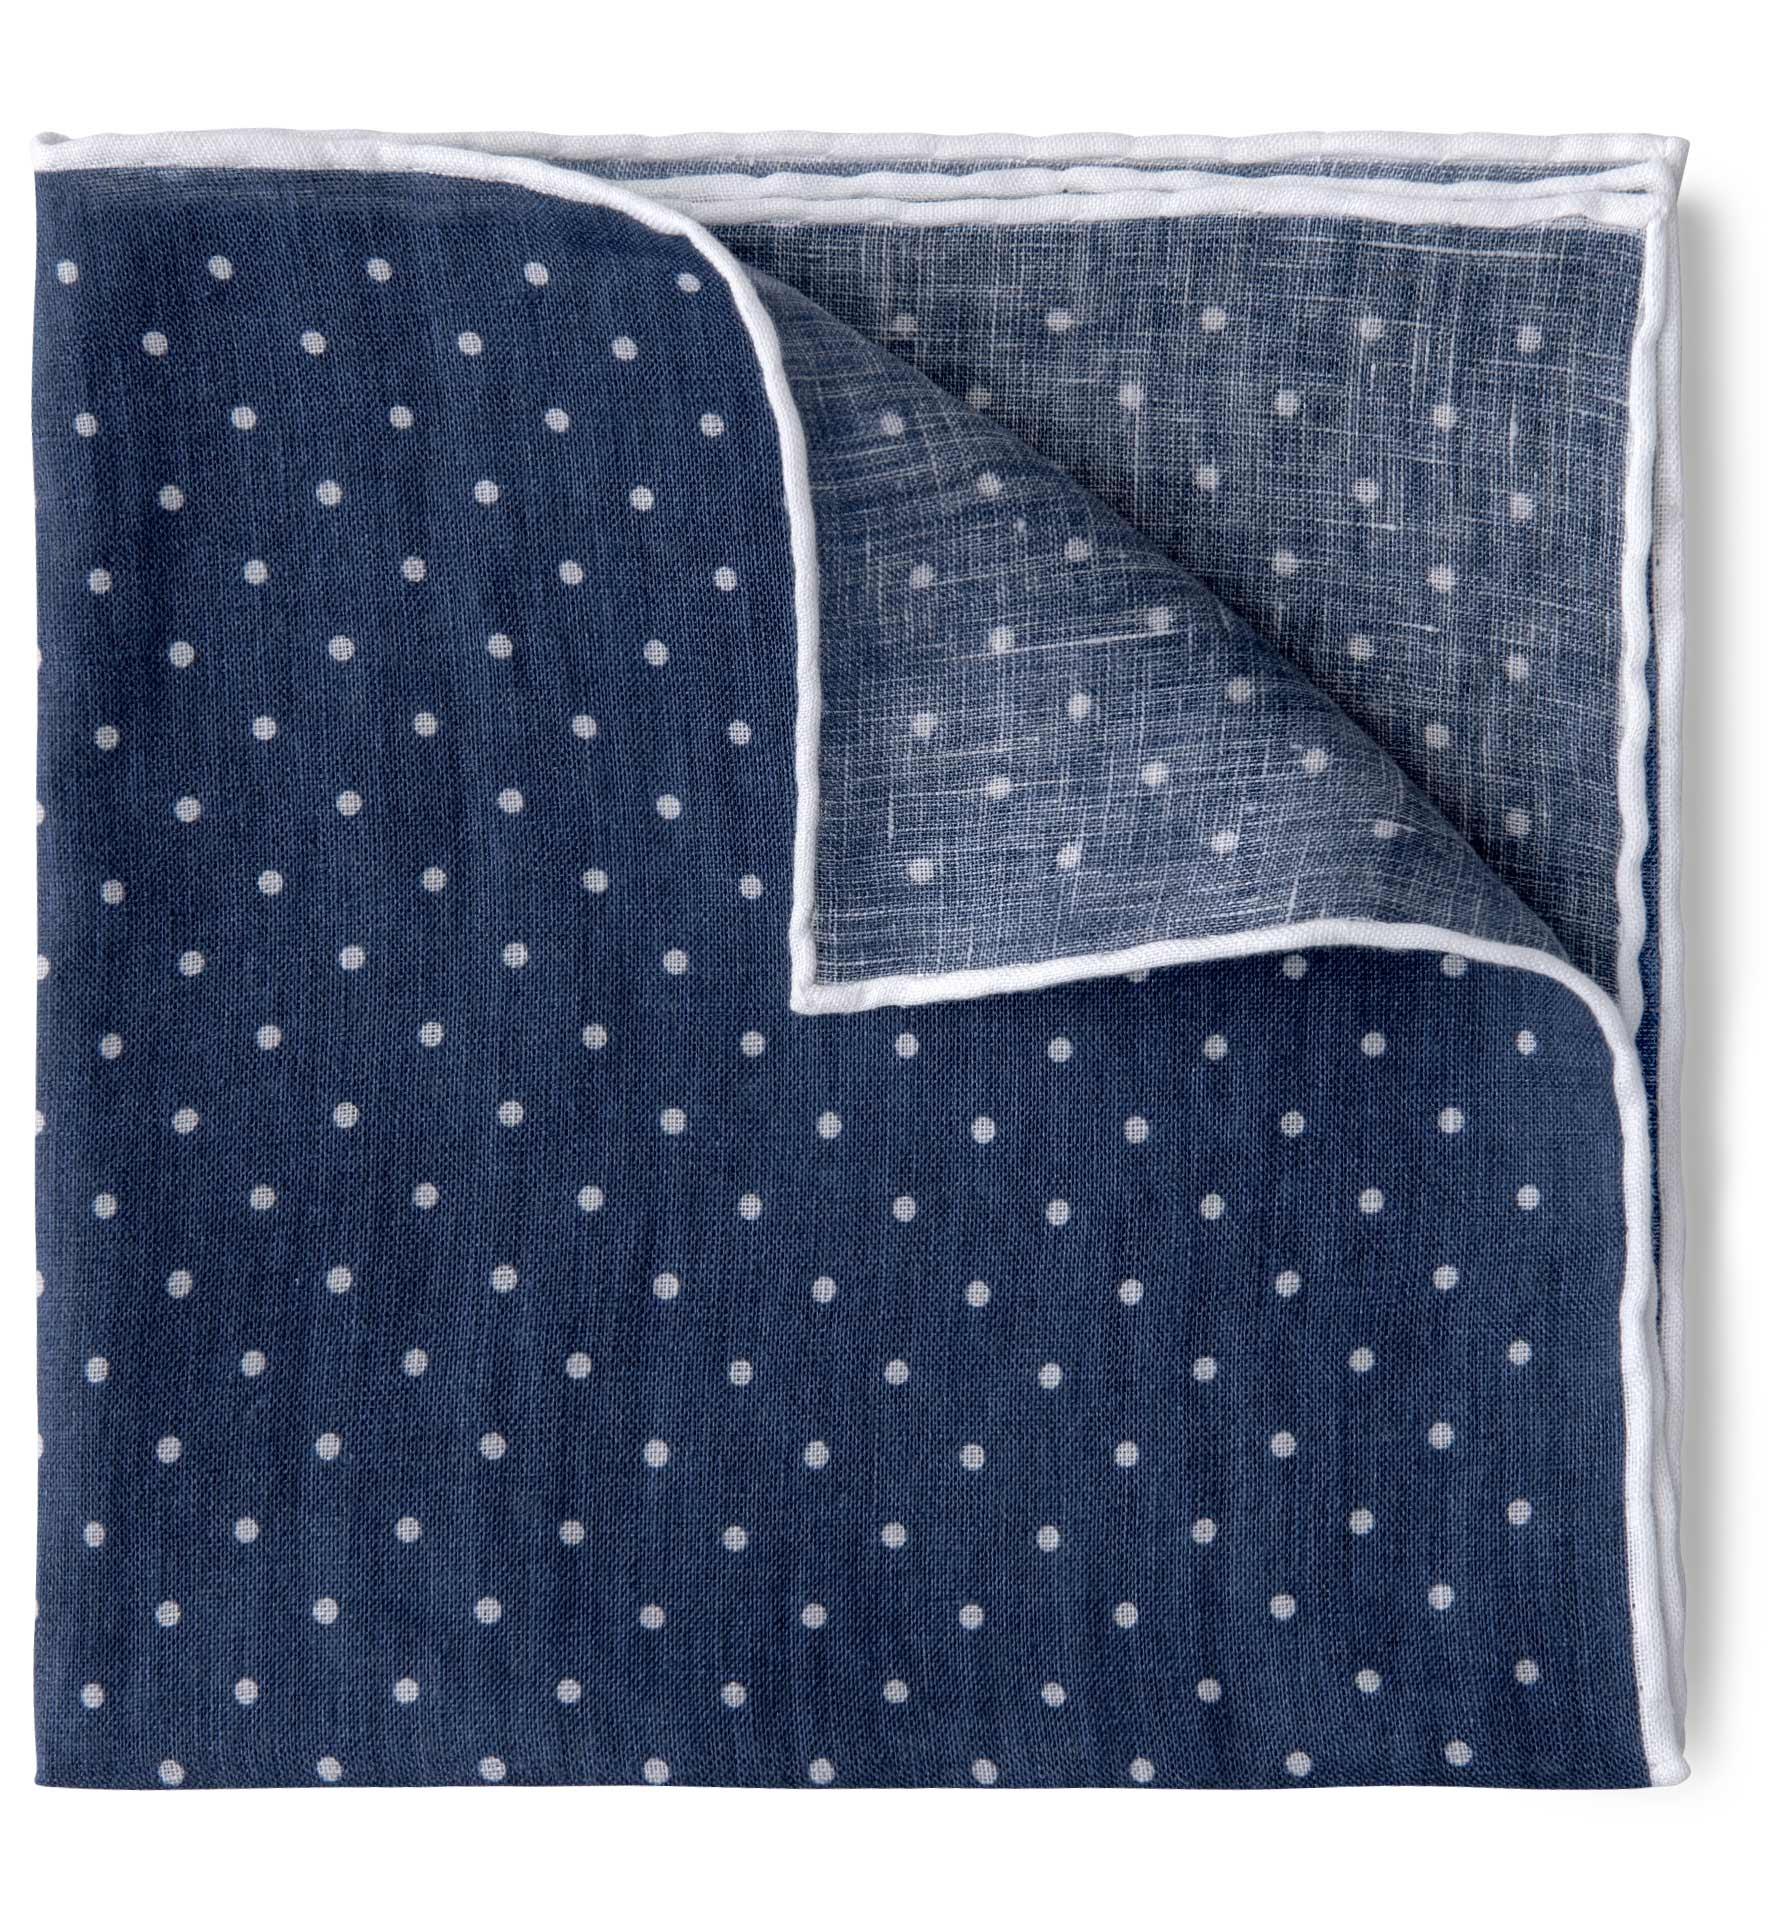 Zoom Image of Faded Navy and White Dot Print Linen Pocket Square